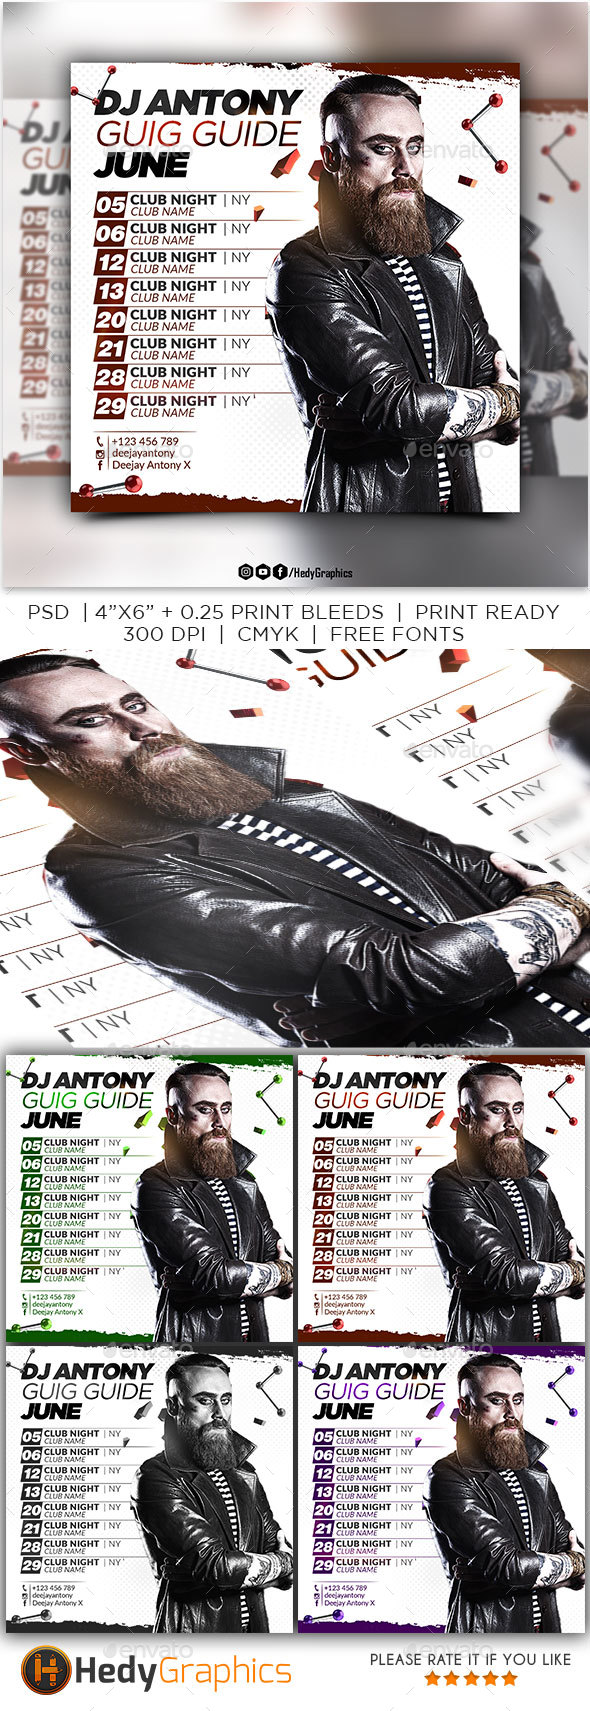 GraphicRiver Dj Guig Guide 21195656